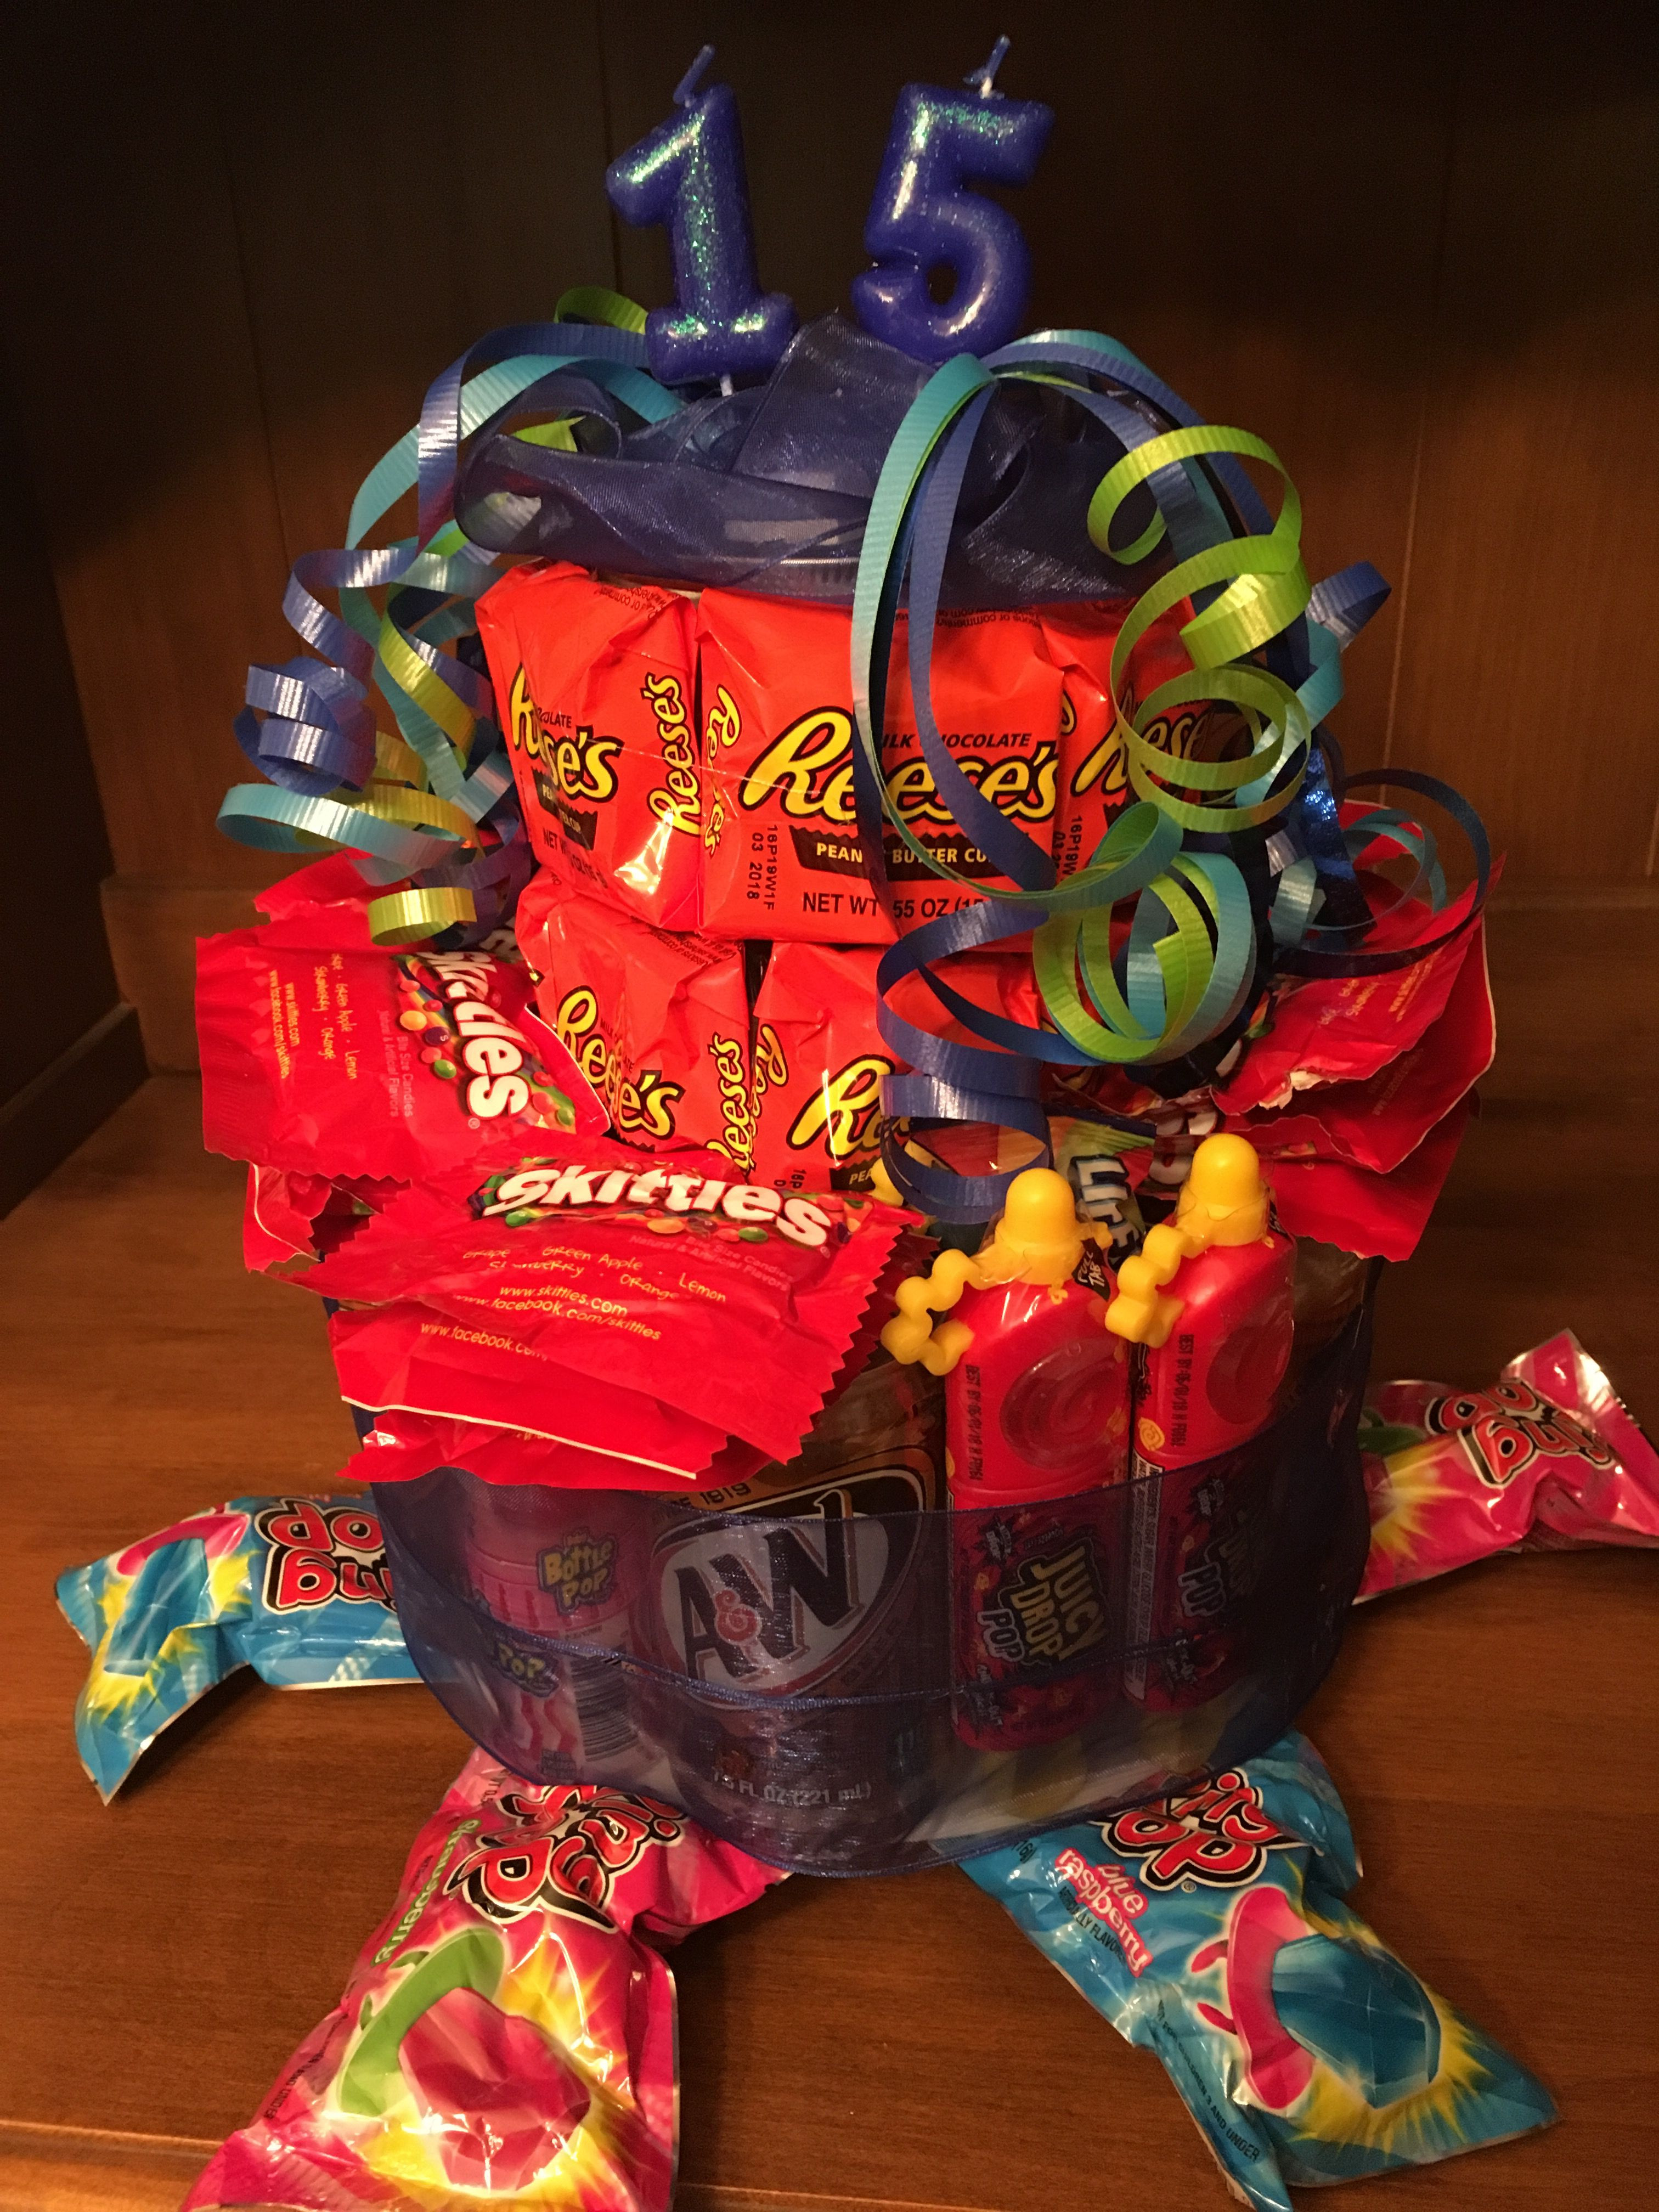 Best ideas about 15 Year Old Boy Birthday Party Ideas . Save or Pin 15 Year Old Boy Birthday Party Ideas Now.